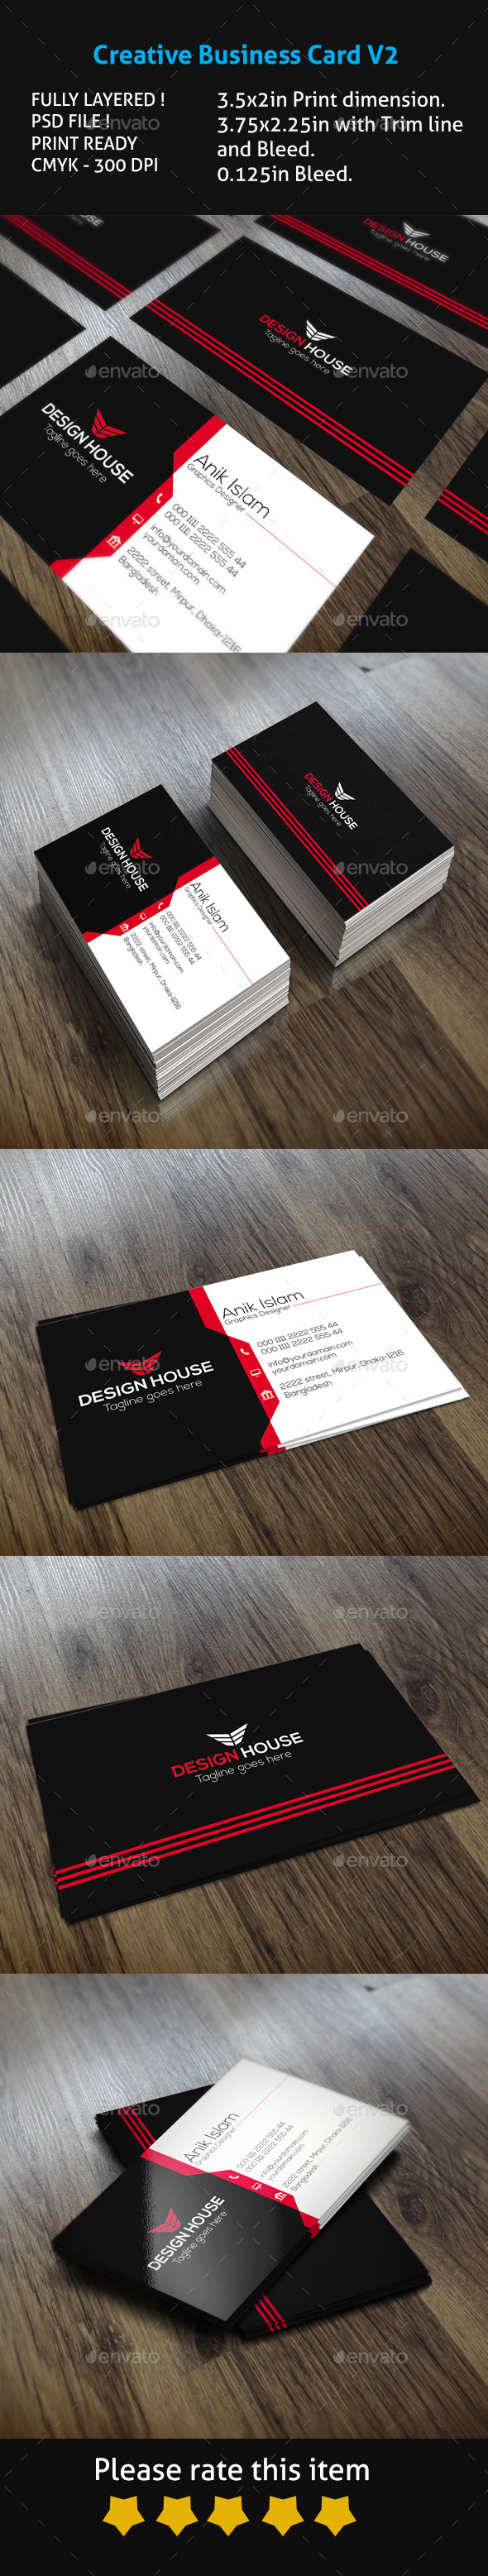 Creative Business Card V2 - Creative Business Cards